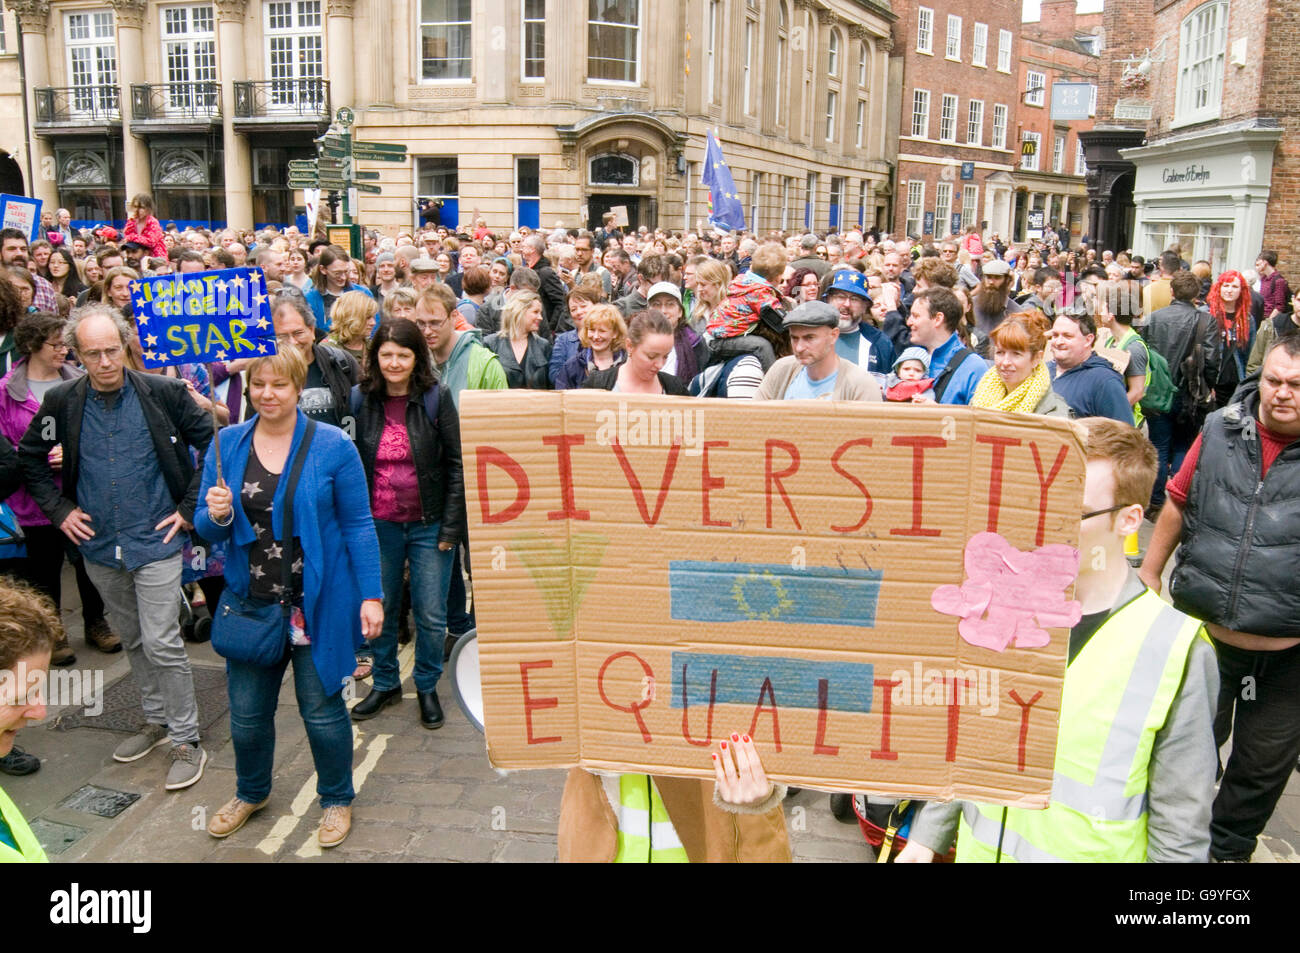 York, UK. 02nd July, 2016. Brexit Protest demonstration in York demonstrators demonstrating eu pro remain leave - Stock Image